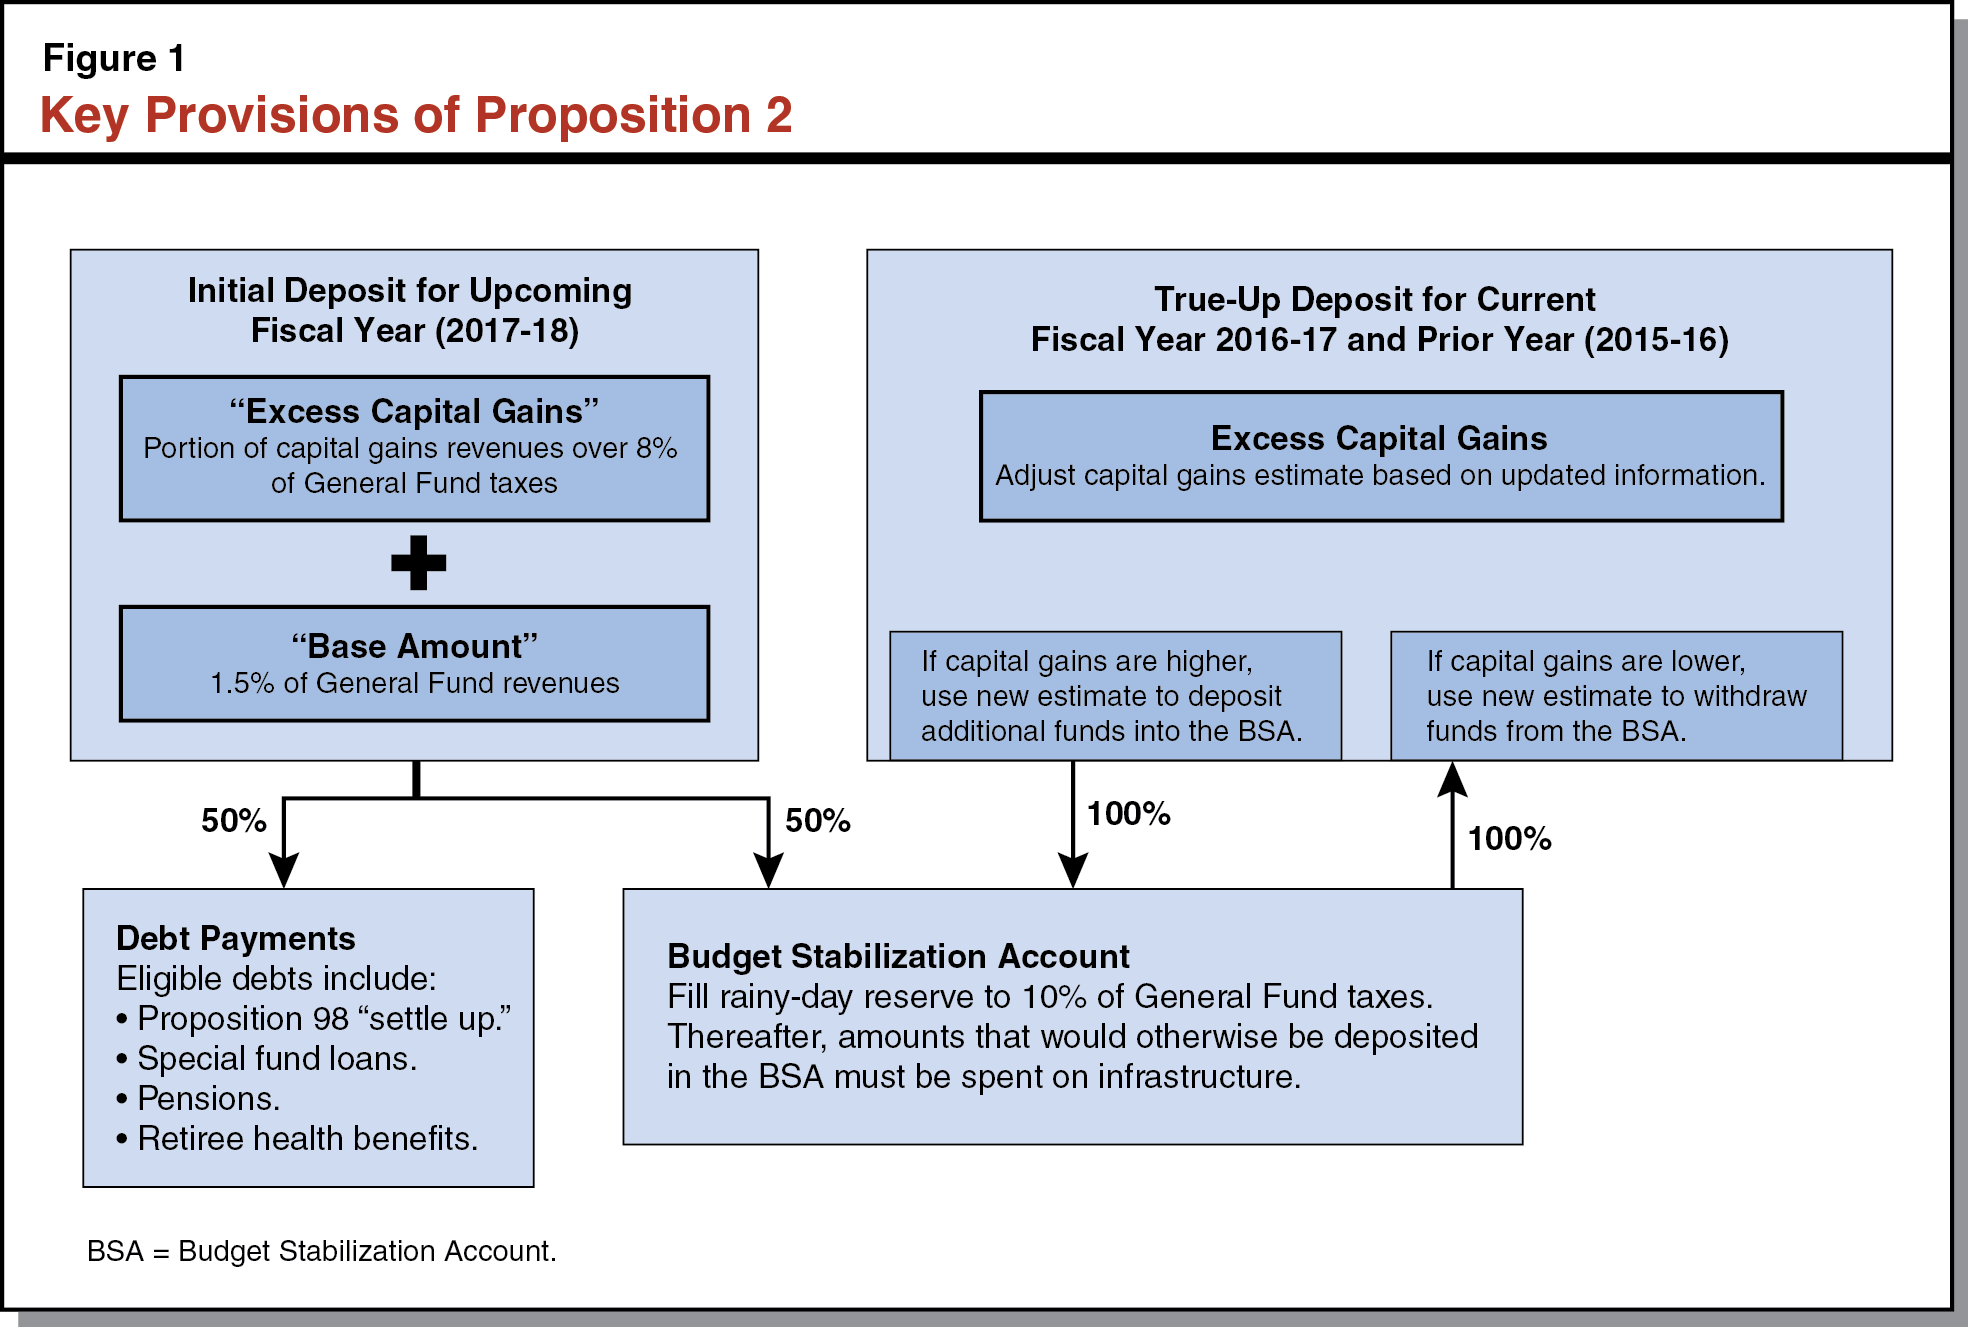 Figure 1: Key Provisions of Proposition 2